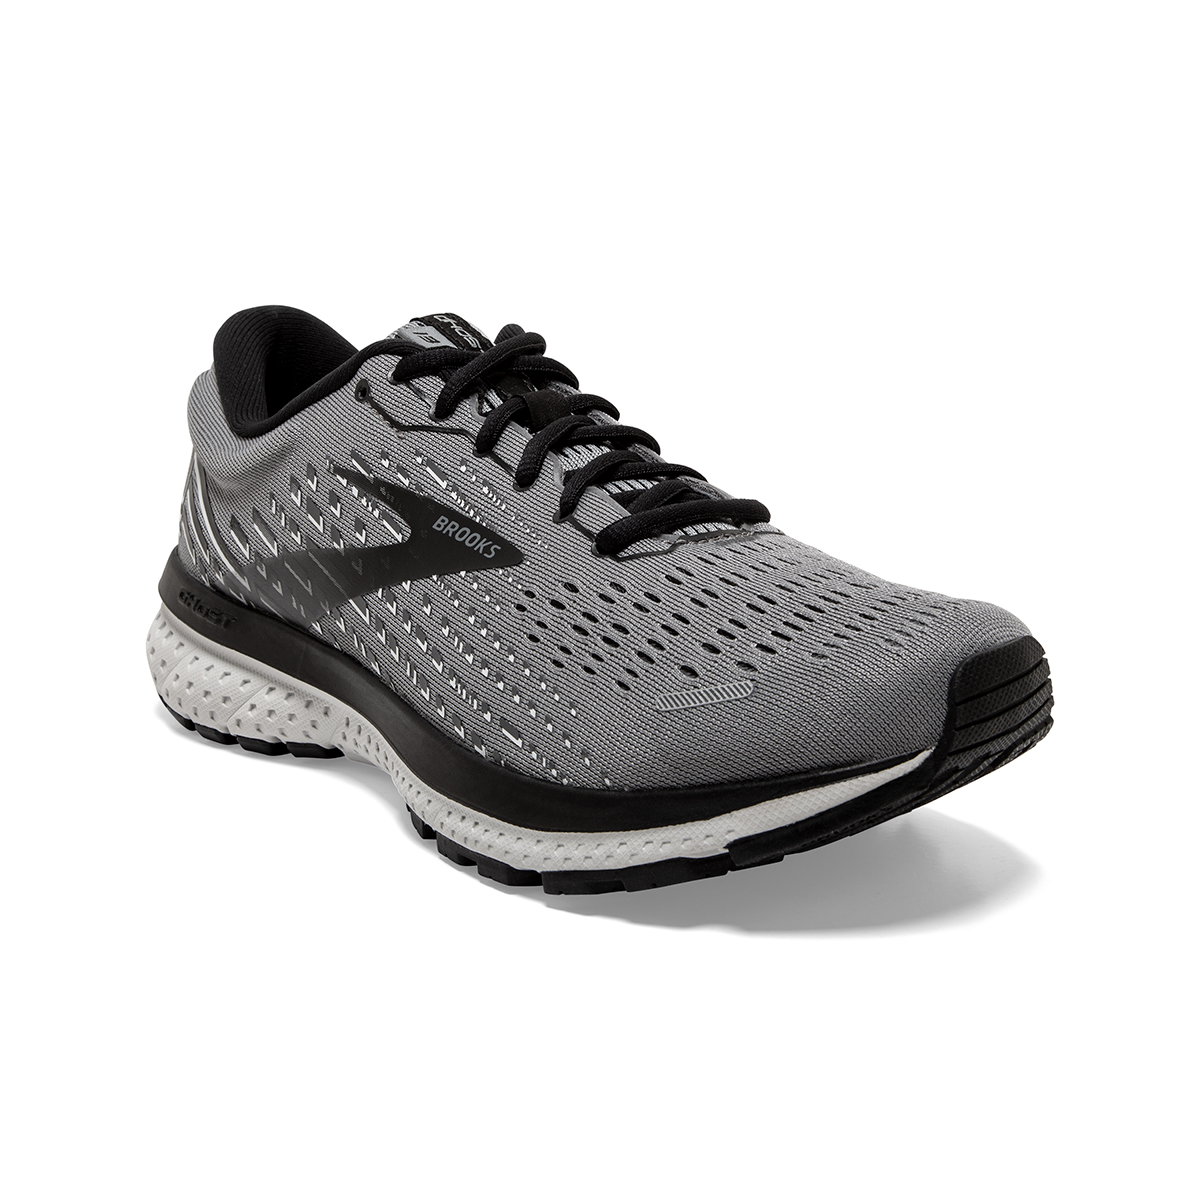 Men's Brooks Ghost 13 Running Shoe - Color: Primer Grey - Size: 7 - Width: Regular, Primer Grey, large, image 4